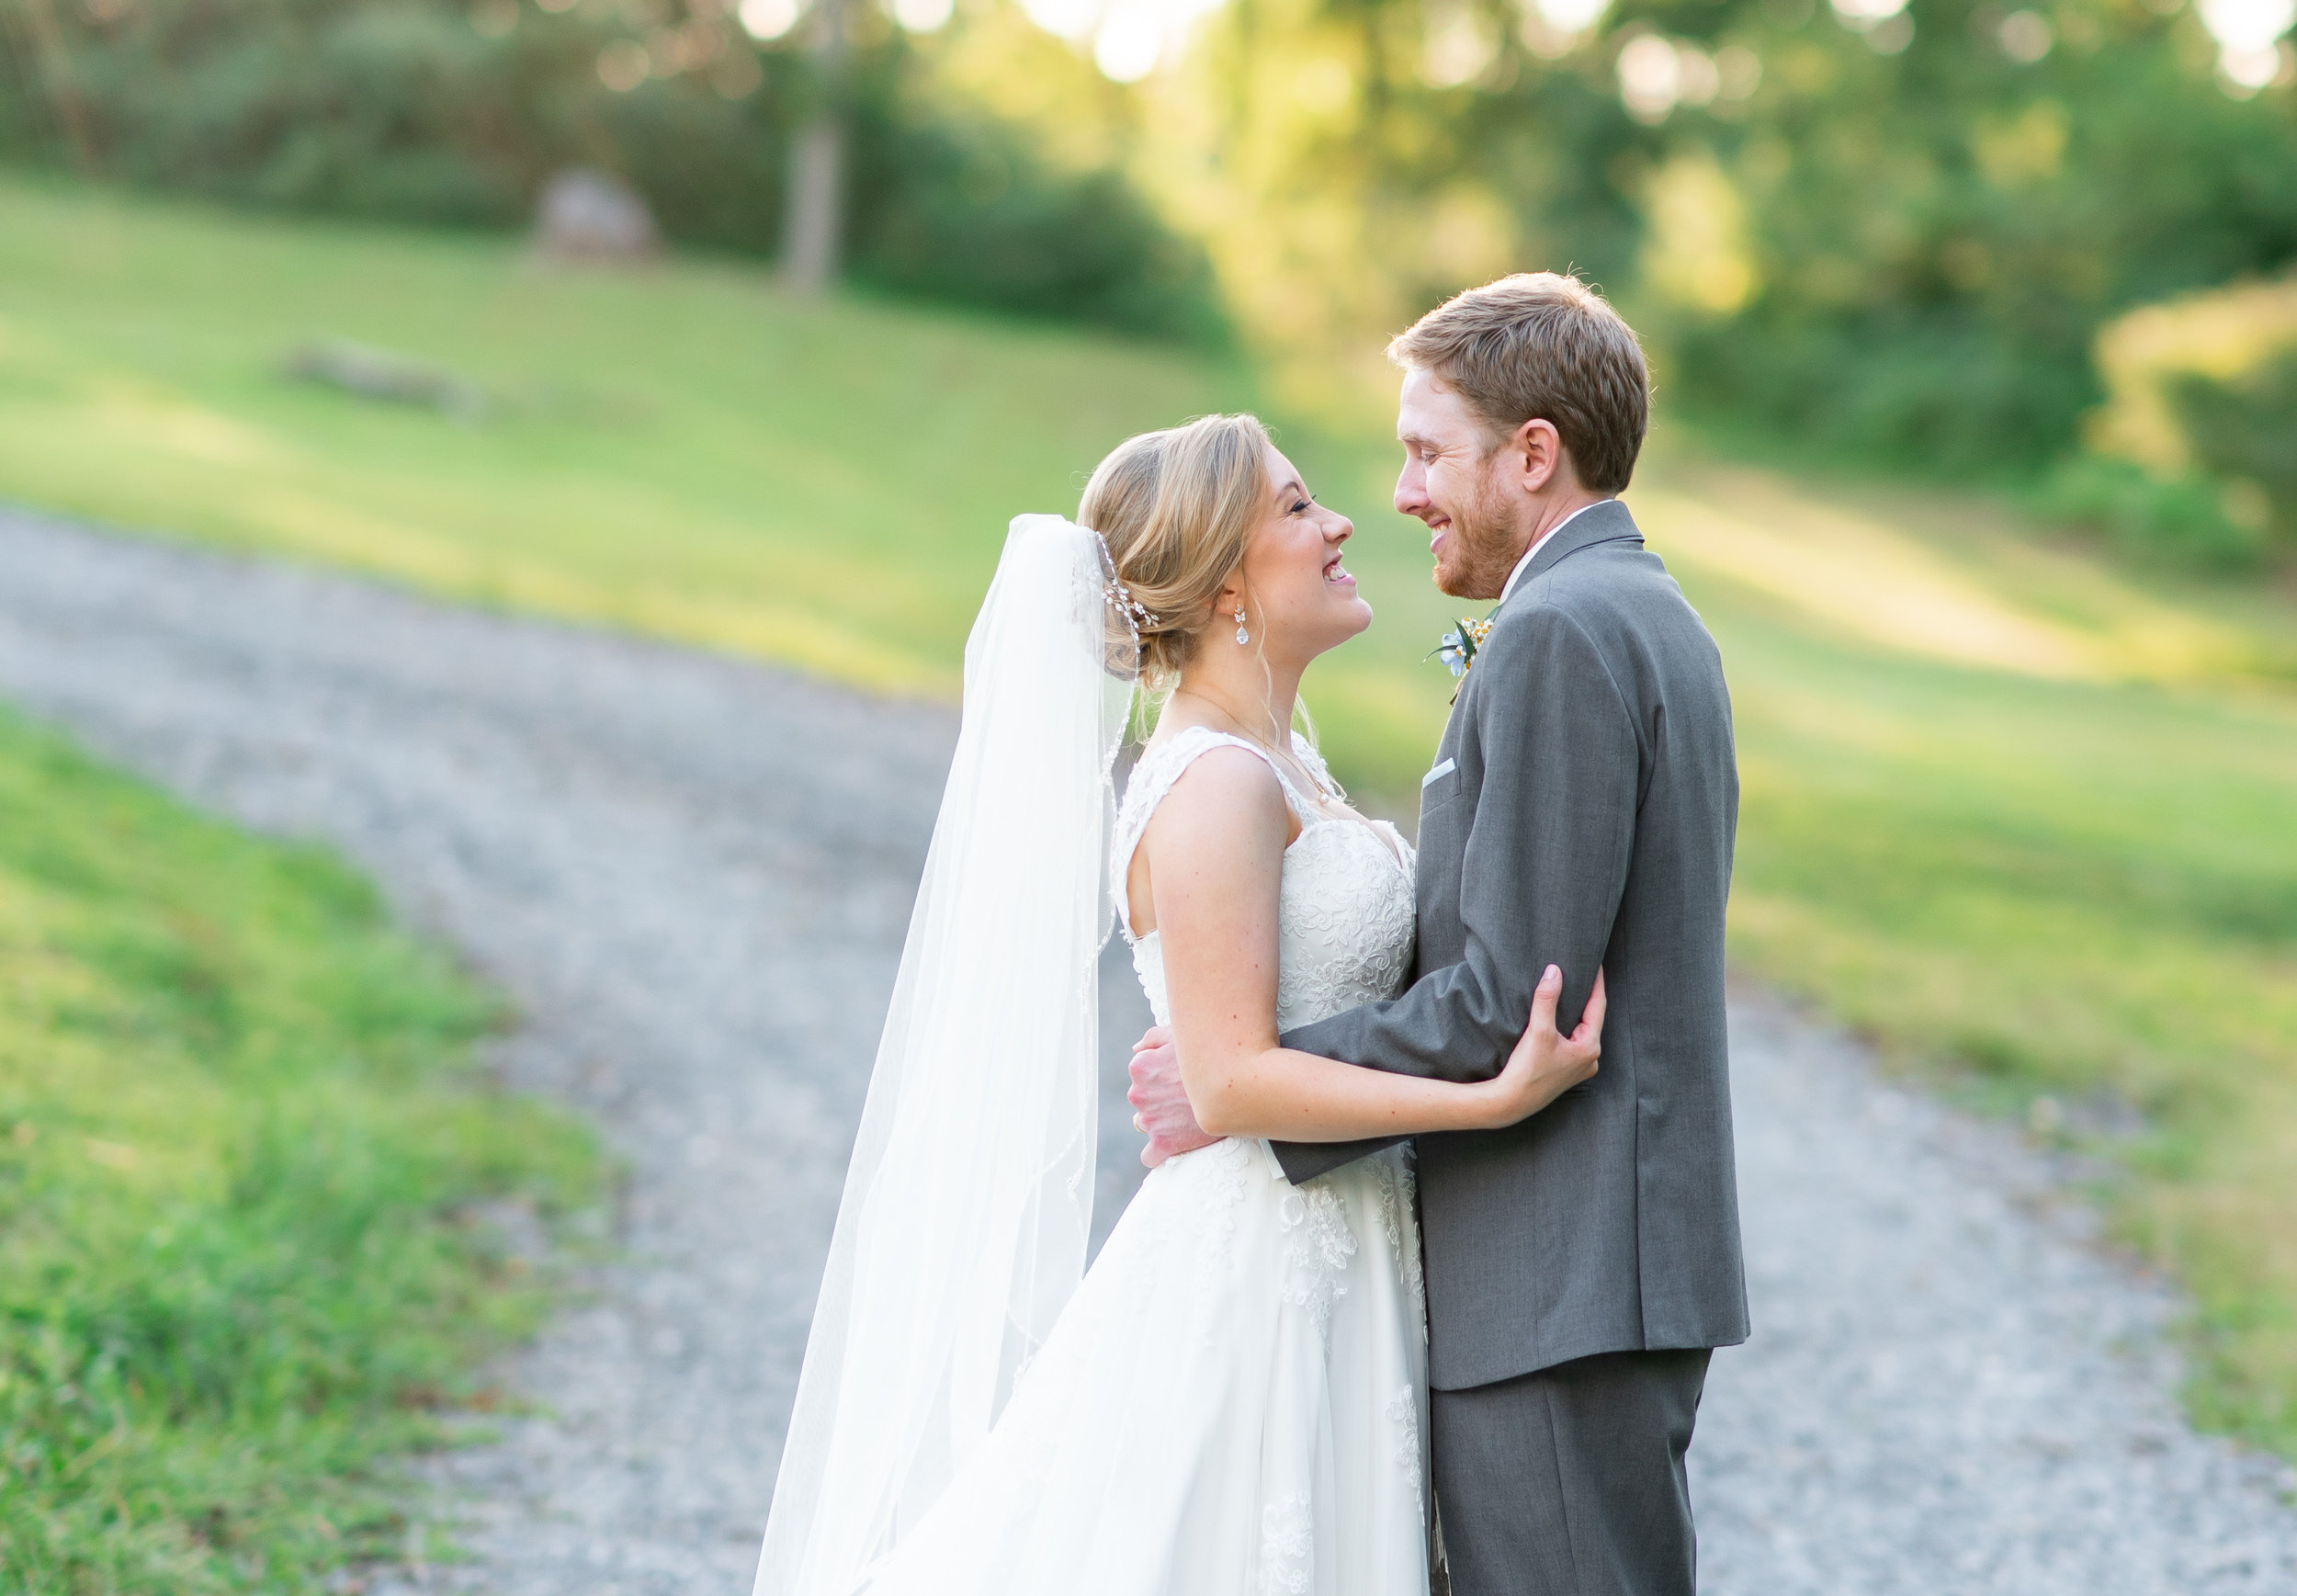 August wedding at stone manor country club in frederick maryland